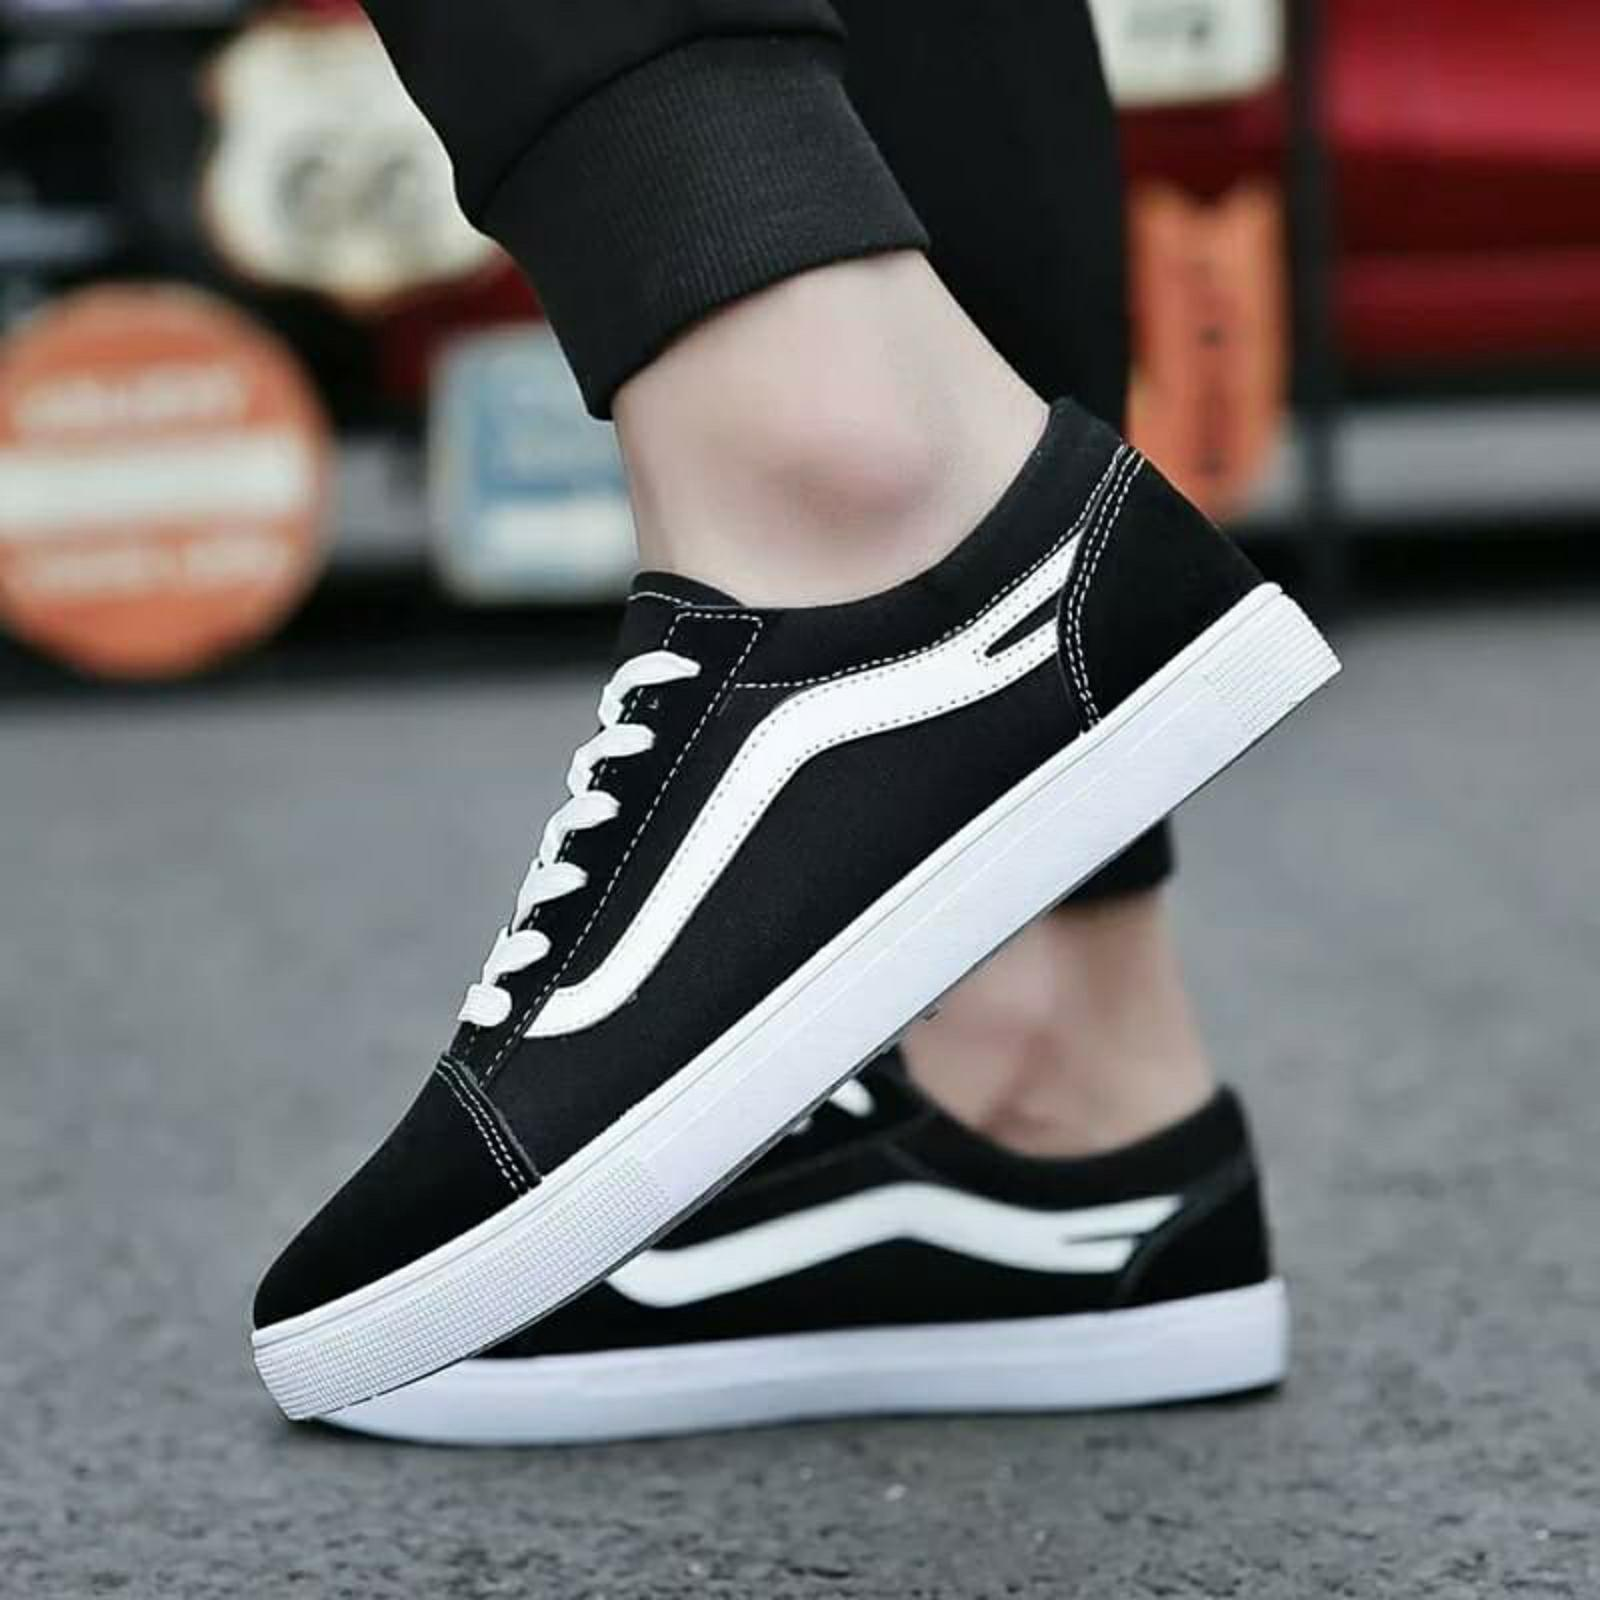 3ad6120fdcc Sneaker Shoes In Bangladesh At Best Price Online - Daraz.com.bd